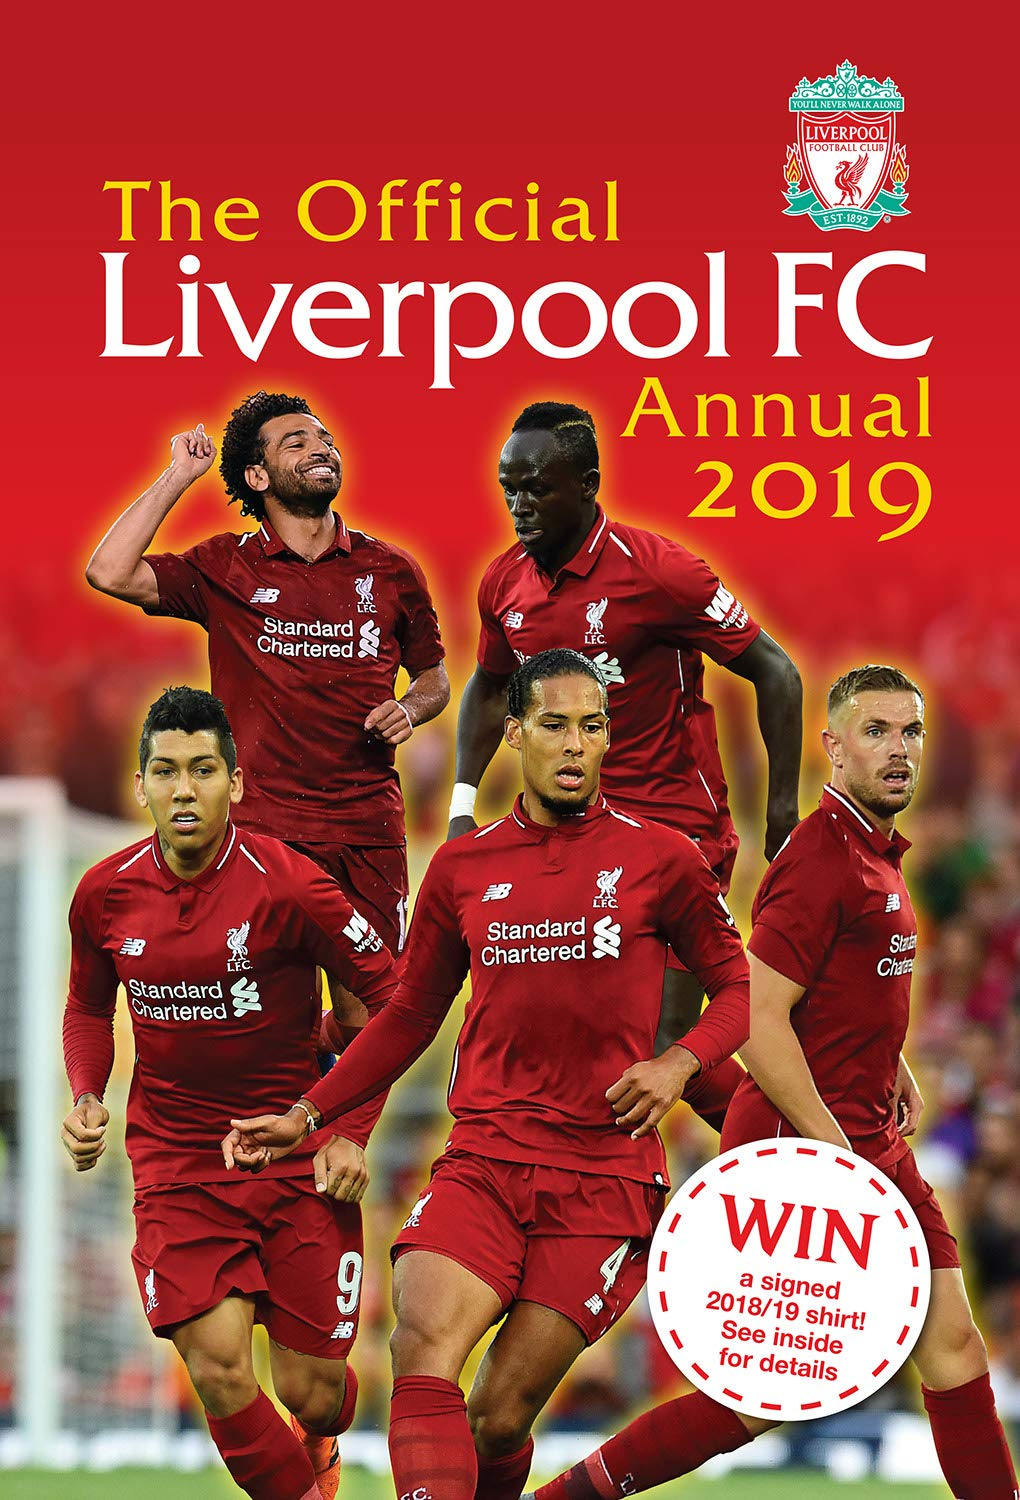 finest selection 1eba6 f51a7 The Official Liverpool FC Annual 2019: Amazon.co.uk: Mark ...